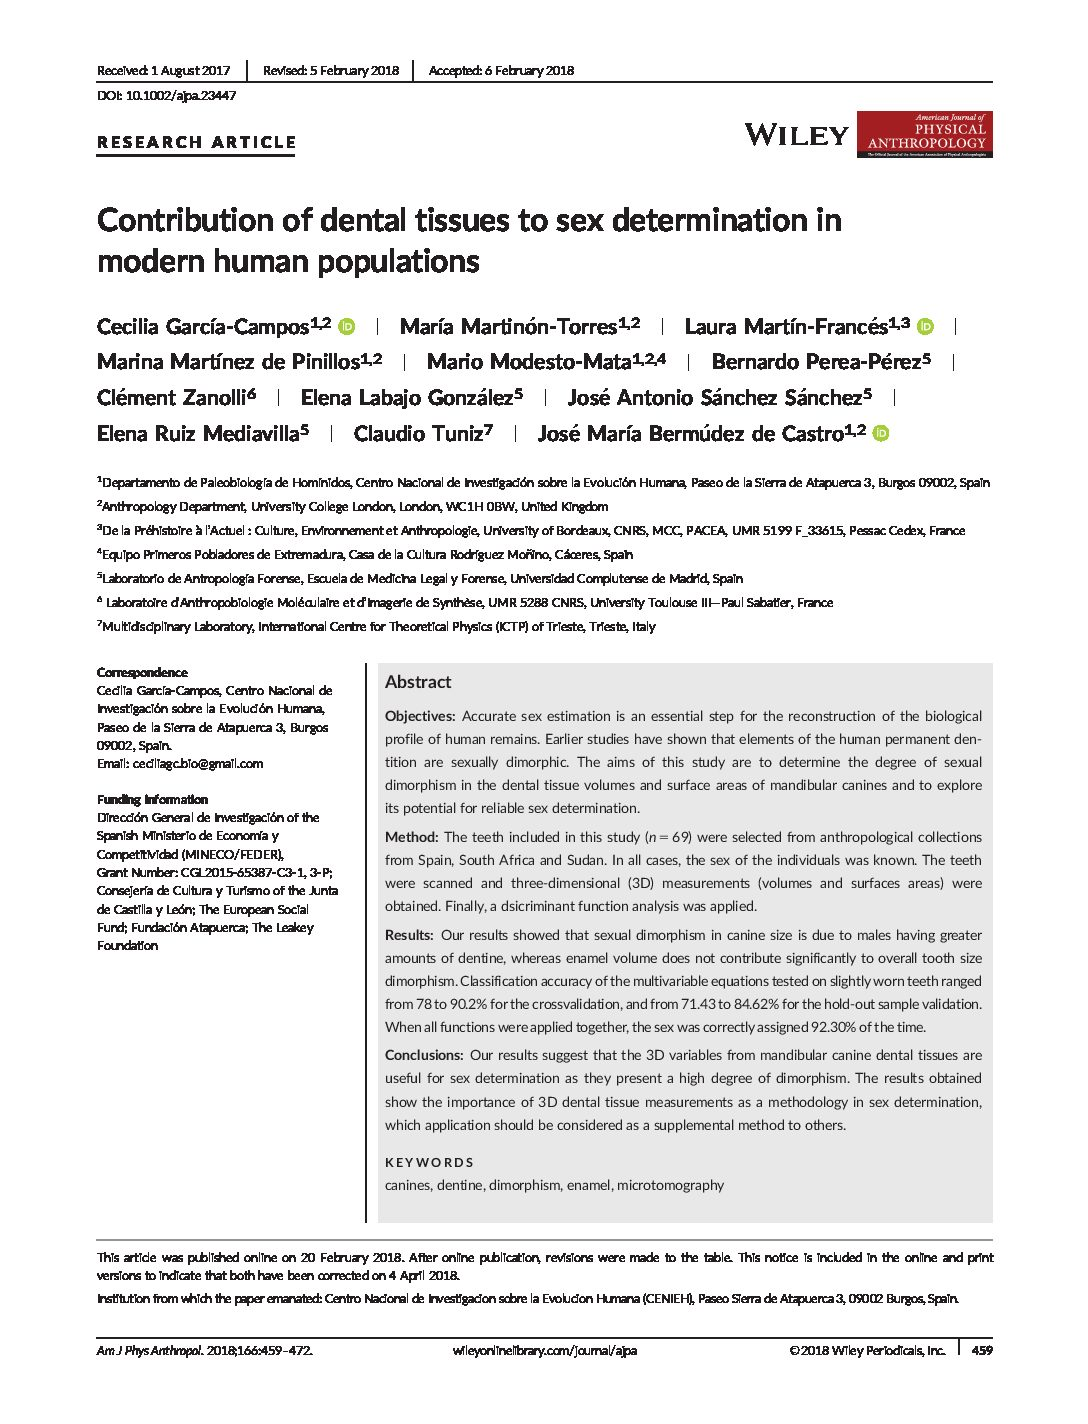 Contribution of dental tissues to sex determination in modern human populations